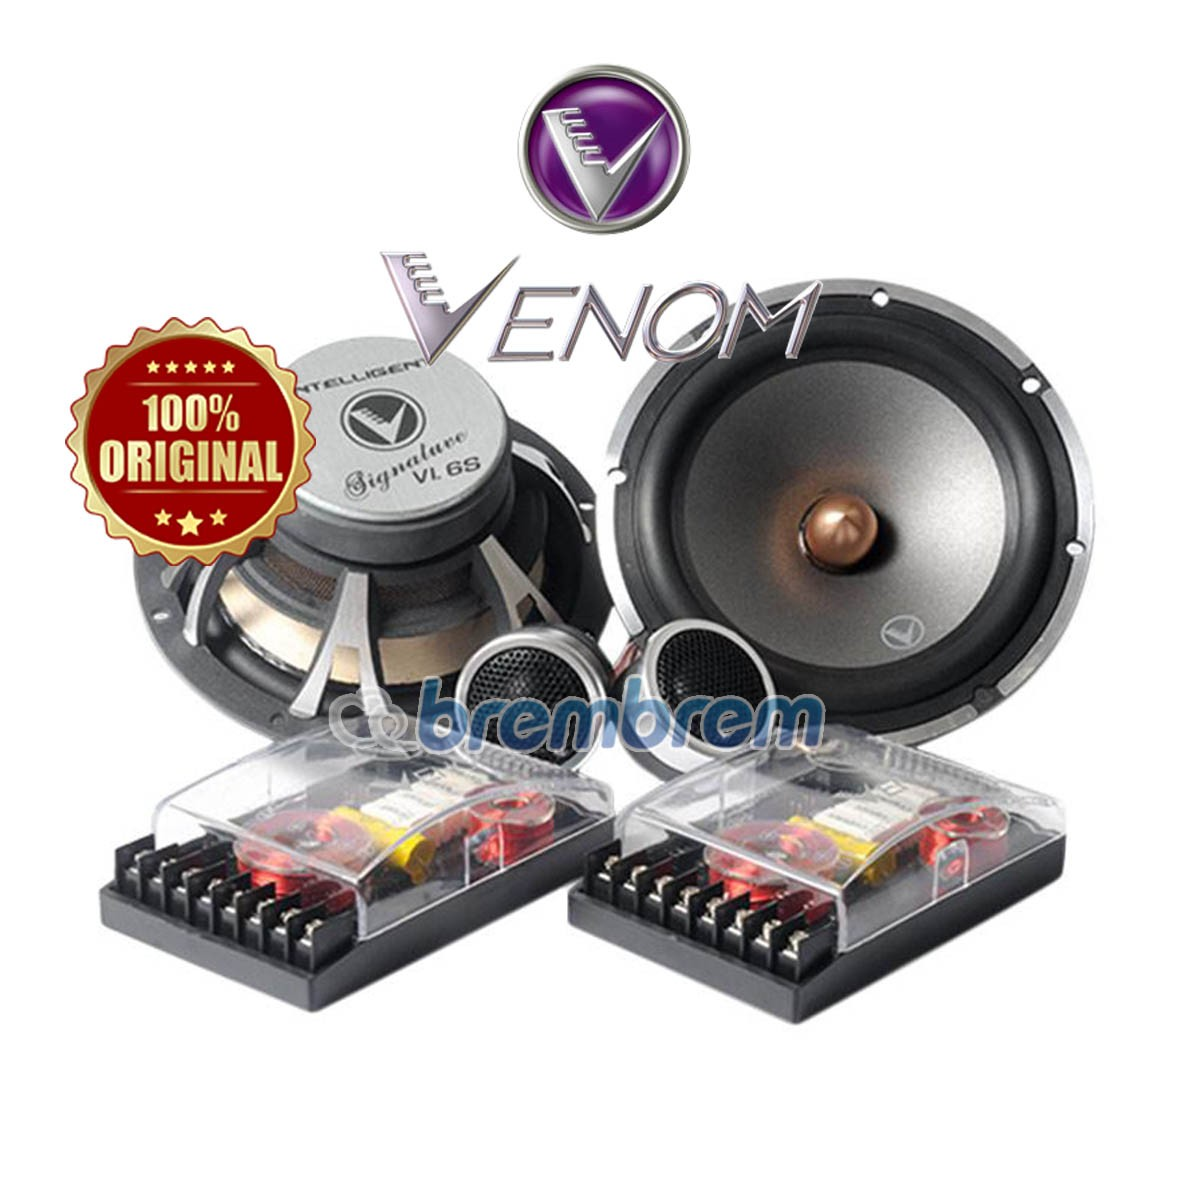 VENOM INTELLEGENT SERIES VI6S - SPEAKER 2 WAY